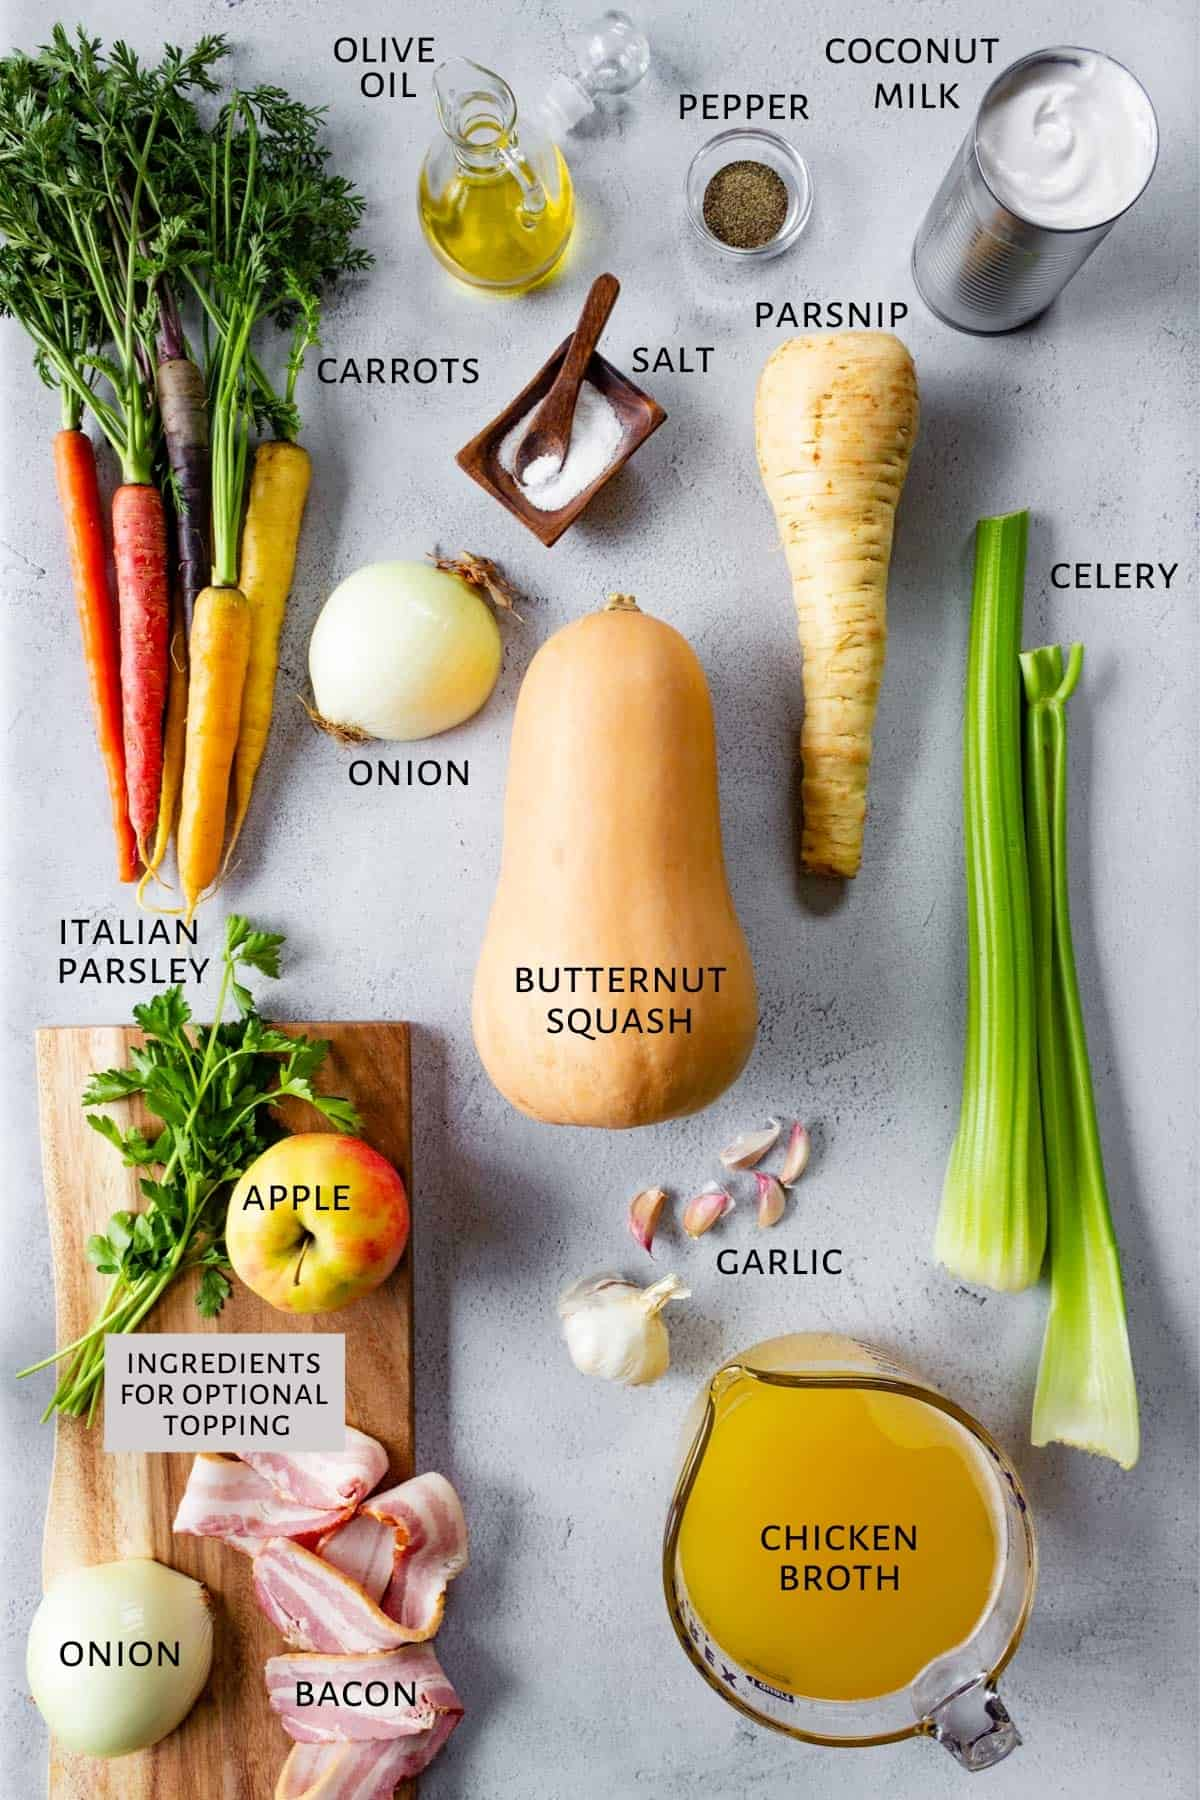 Ingredients for butternut squash soup are spread out on a counter.